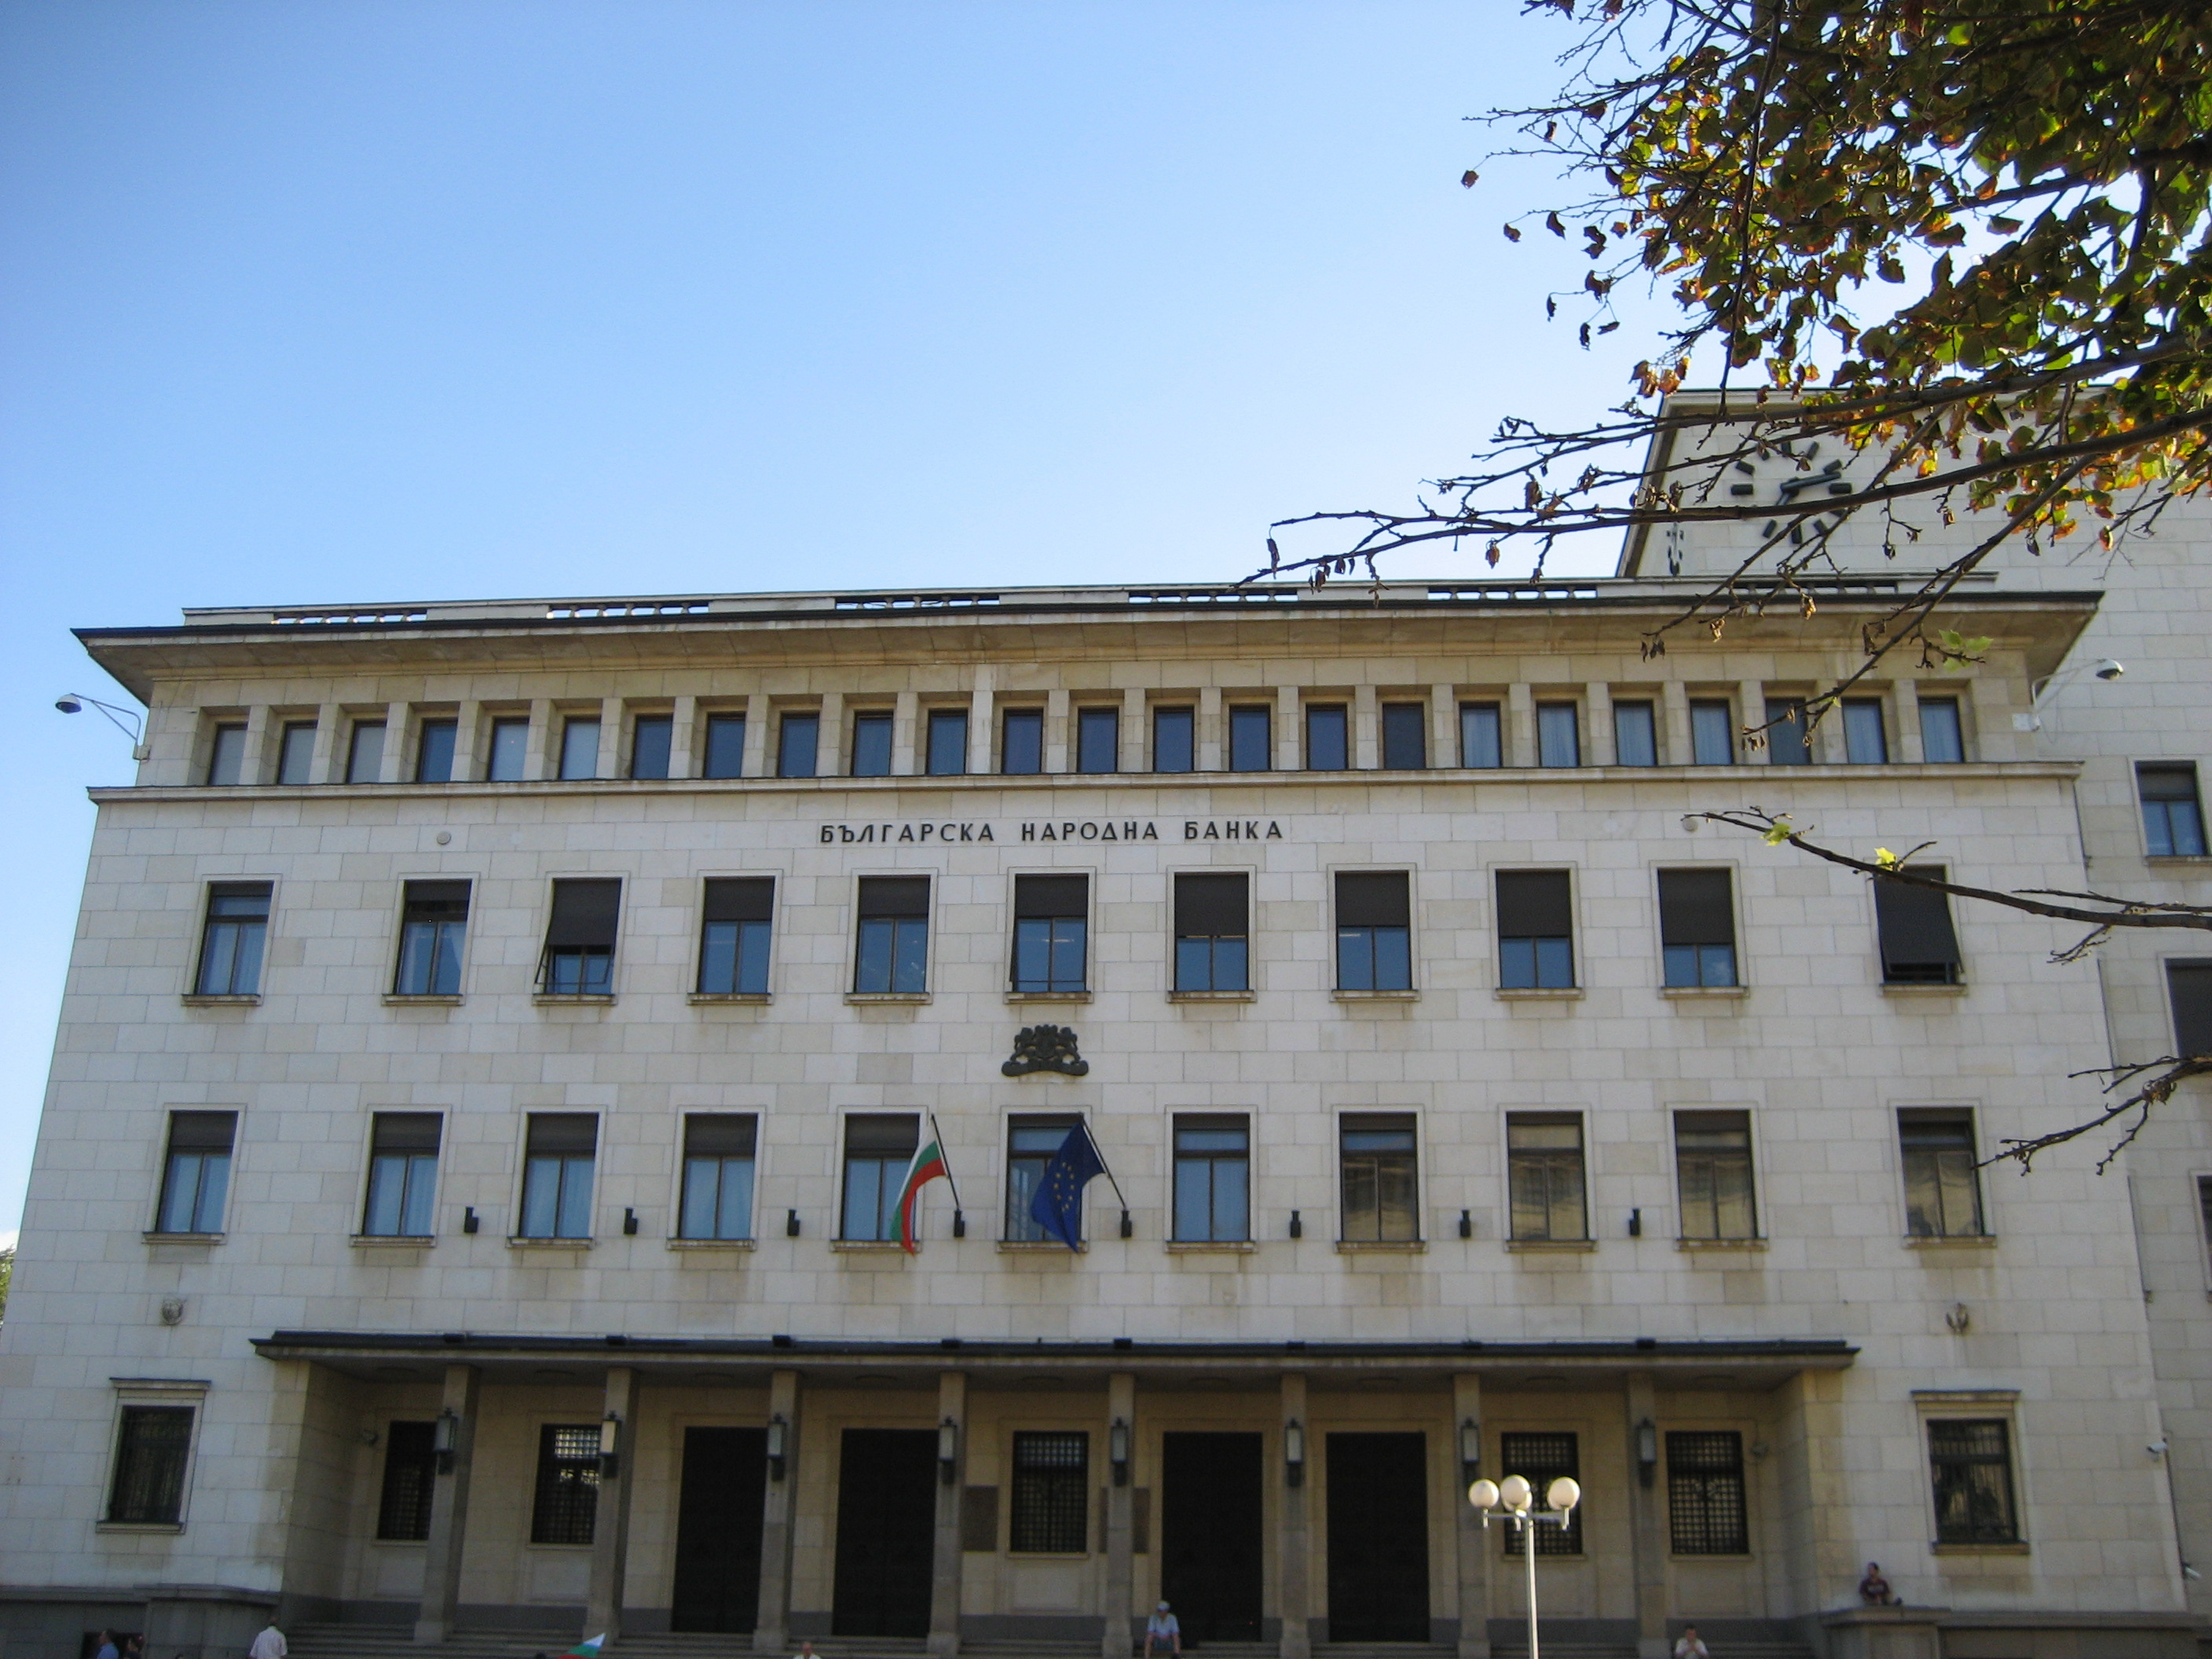 Museum with Bulgarian National Bank